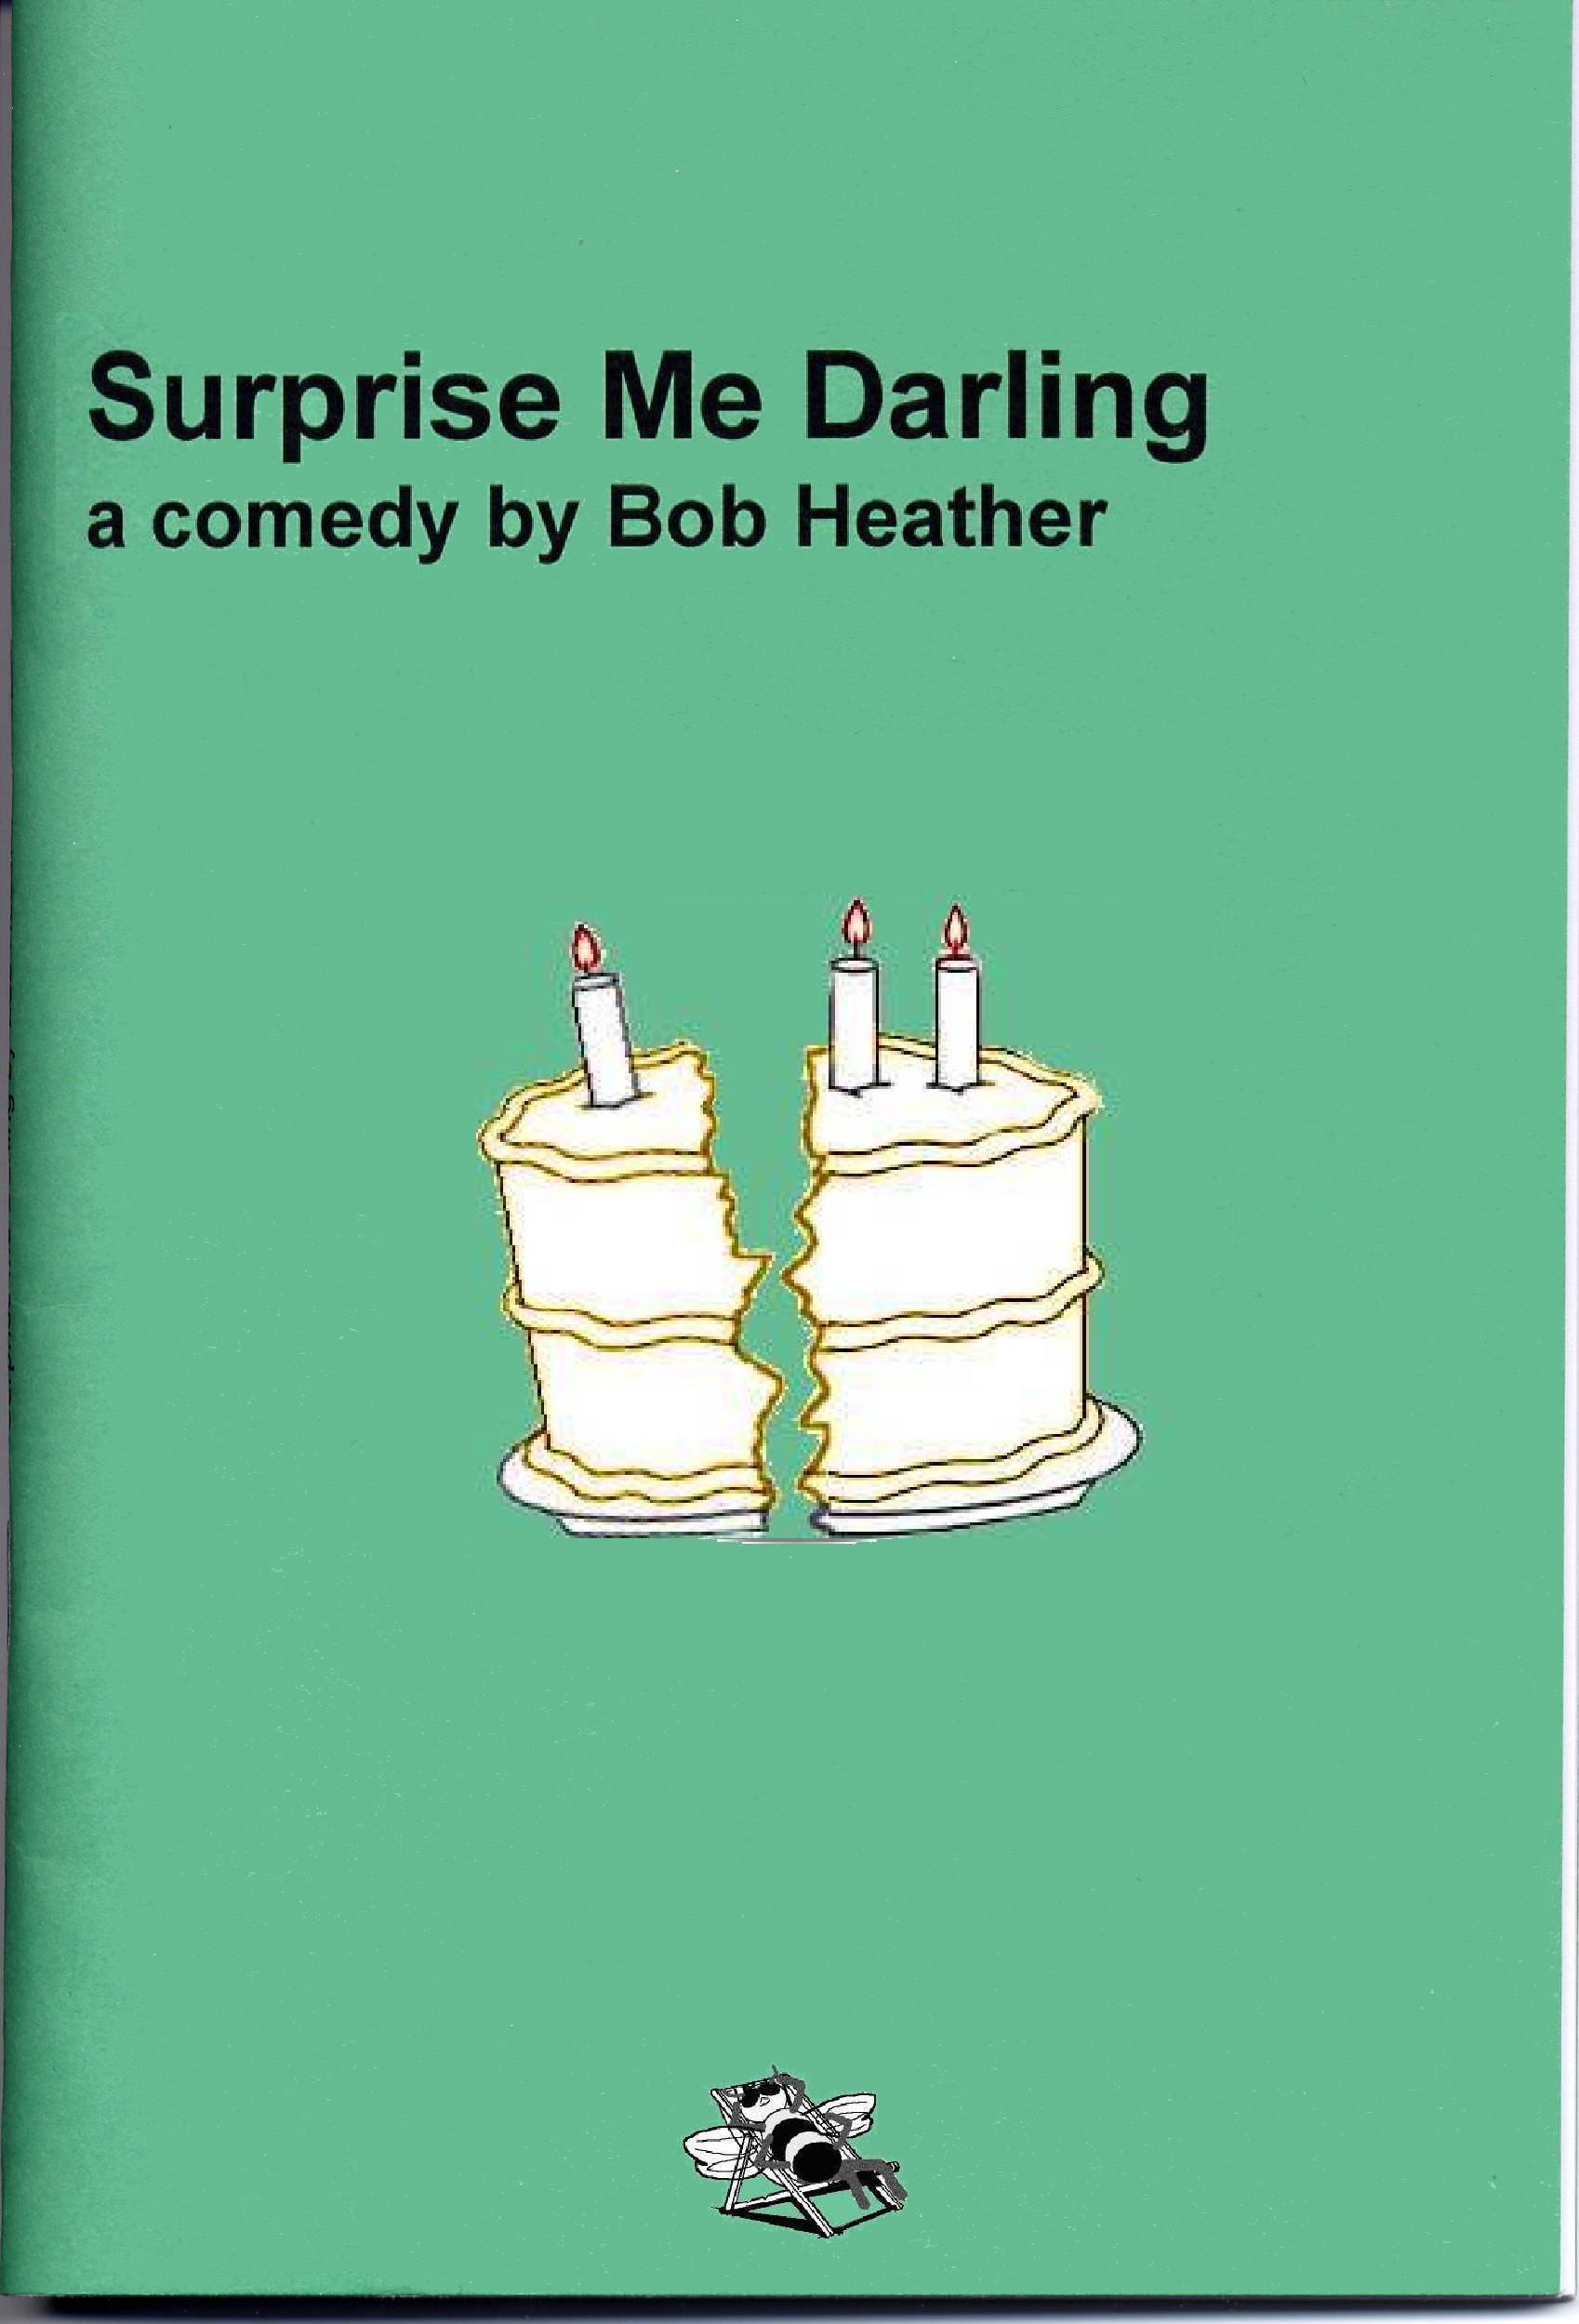 Surprise Me Darling